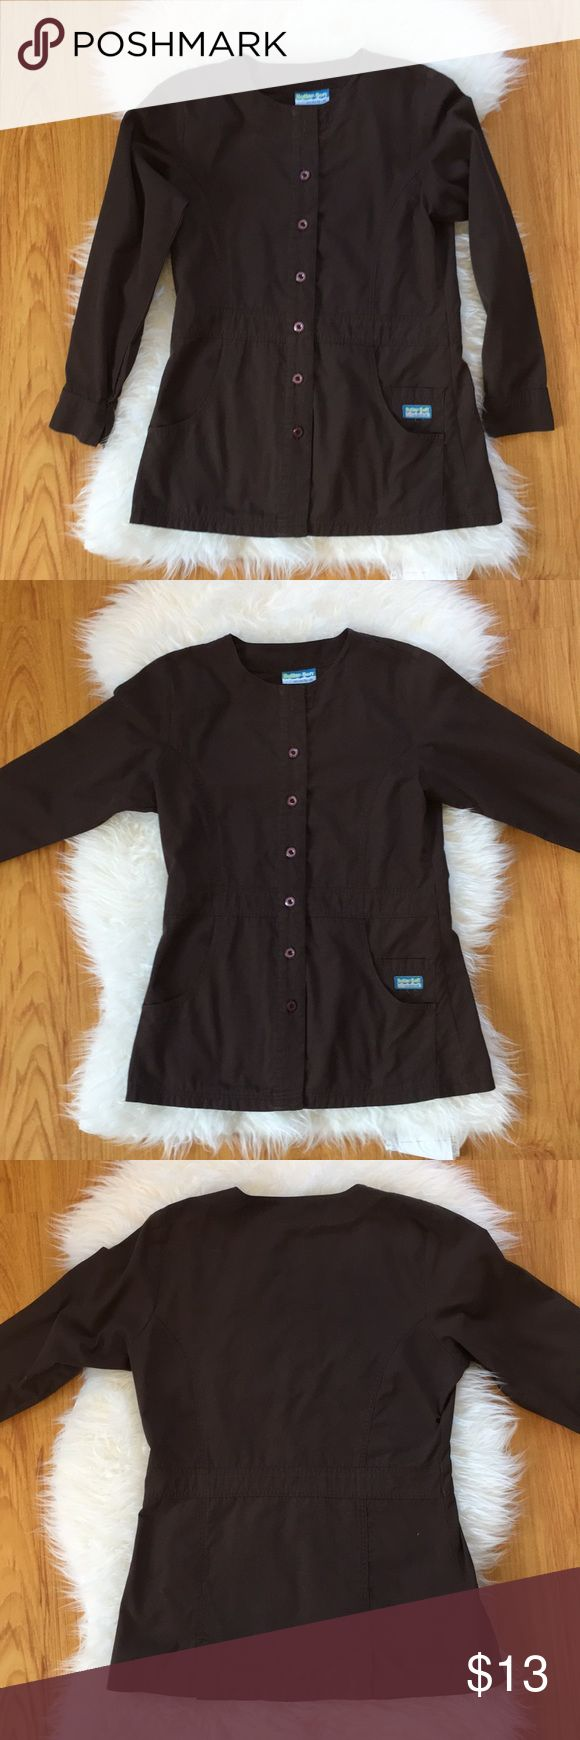 Butter-Soft by UA nursing uniform scrub jacket Buttersoft by Uniform Advantage XS button front uniform nursing scrub jacket   Scrub jacket is 65% polyester and 35% combined cotton and is best described as a chocolate brown   Scrub jacket is very well cared from and from a smoke-free home   * Bundle with my any of my other Butter-Soft scrub jackets for even greater savings! Butter-Soft by UA Jackets & Coats